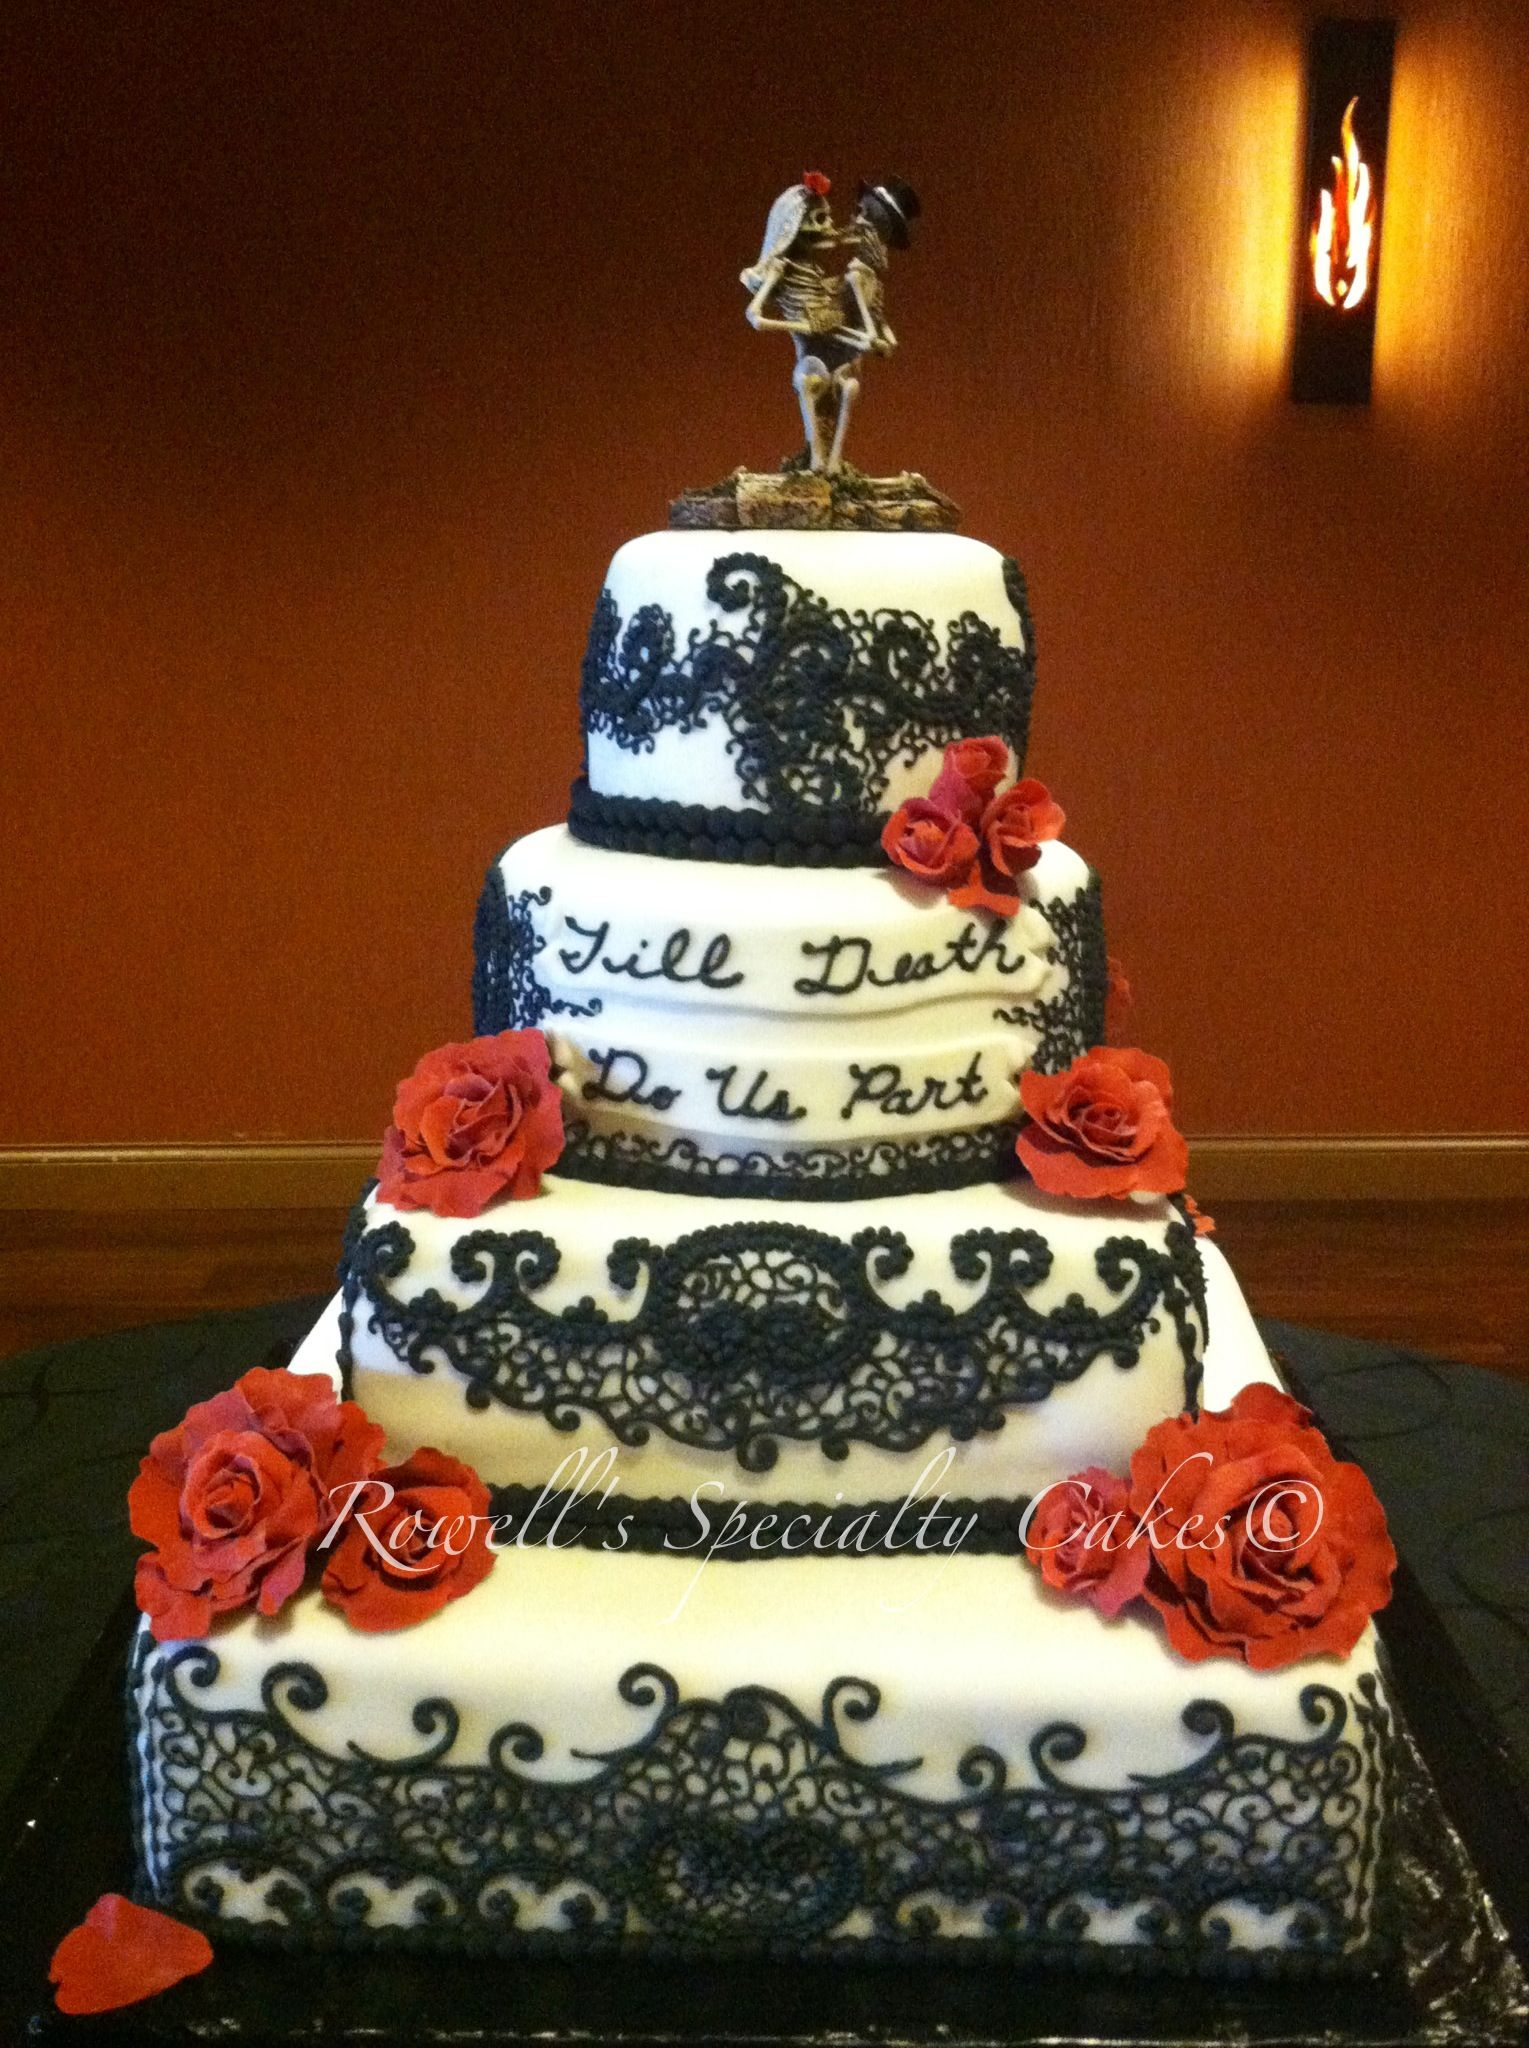 Rowell S Specialty Cakes Till Do Us Part Wedding Cake White And Black Edilble Lace Red